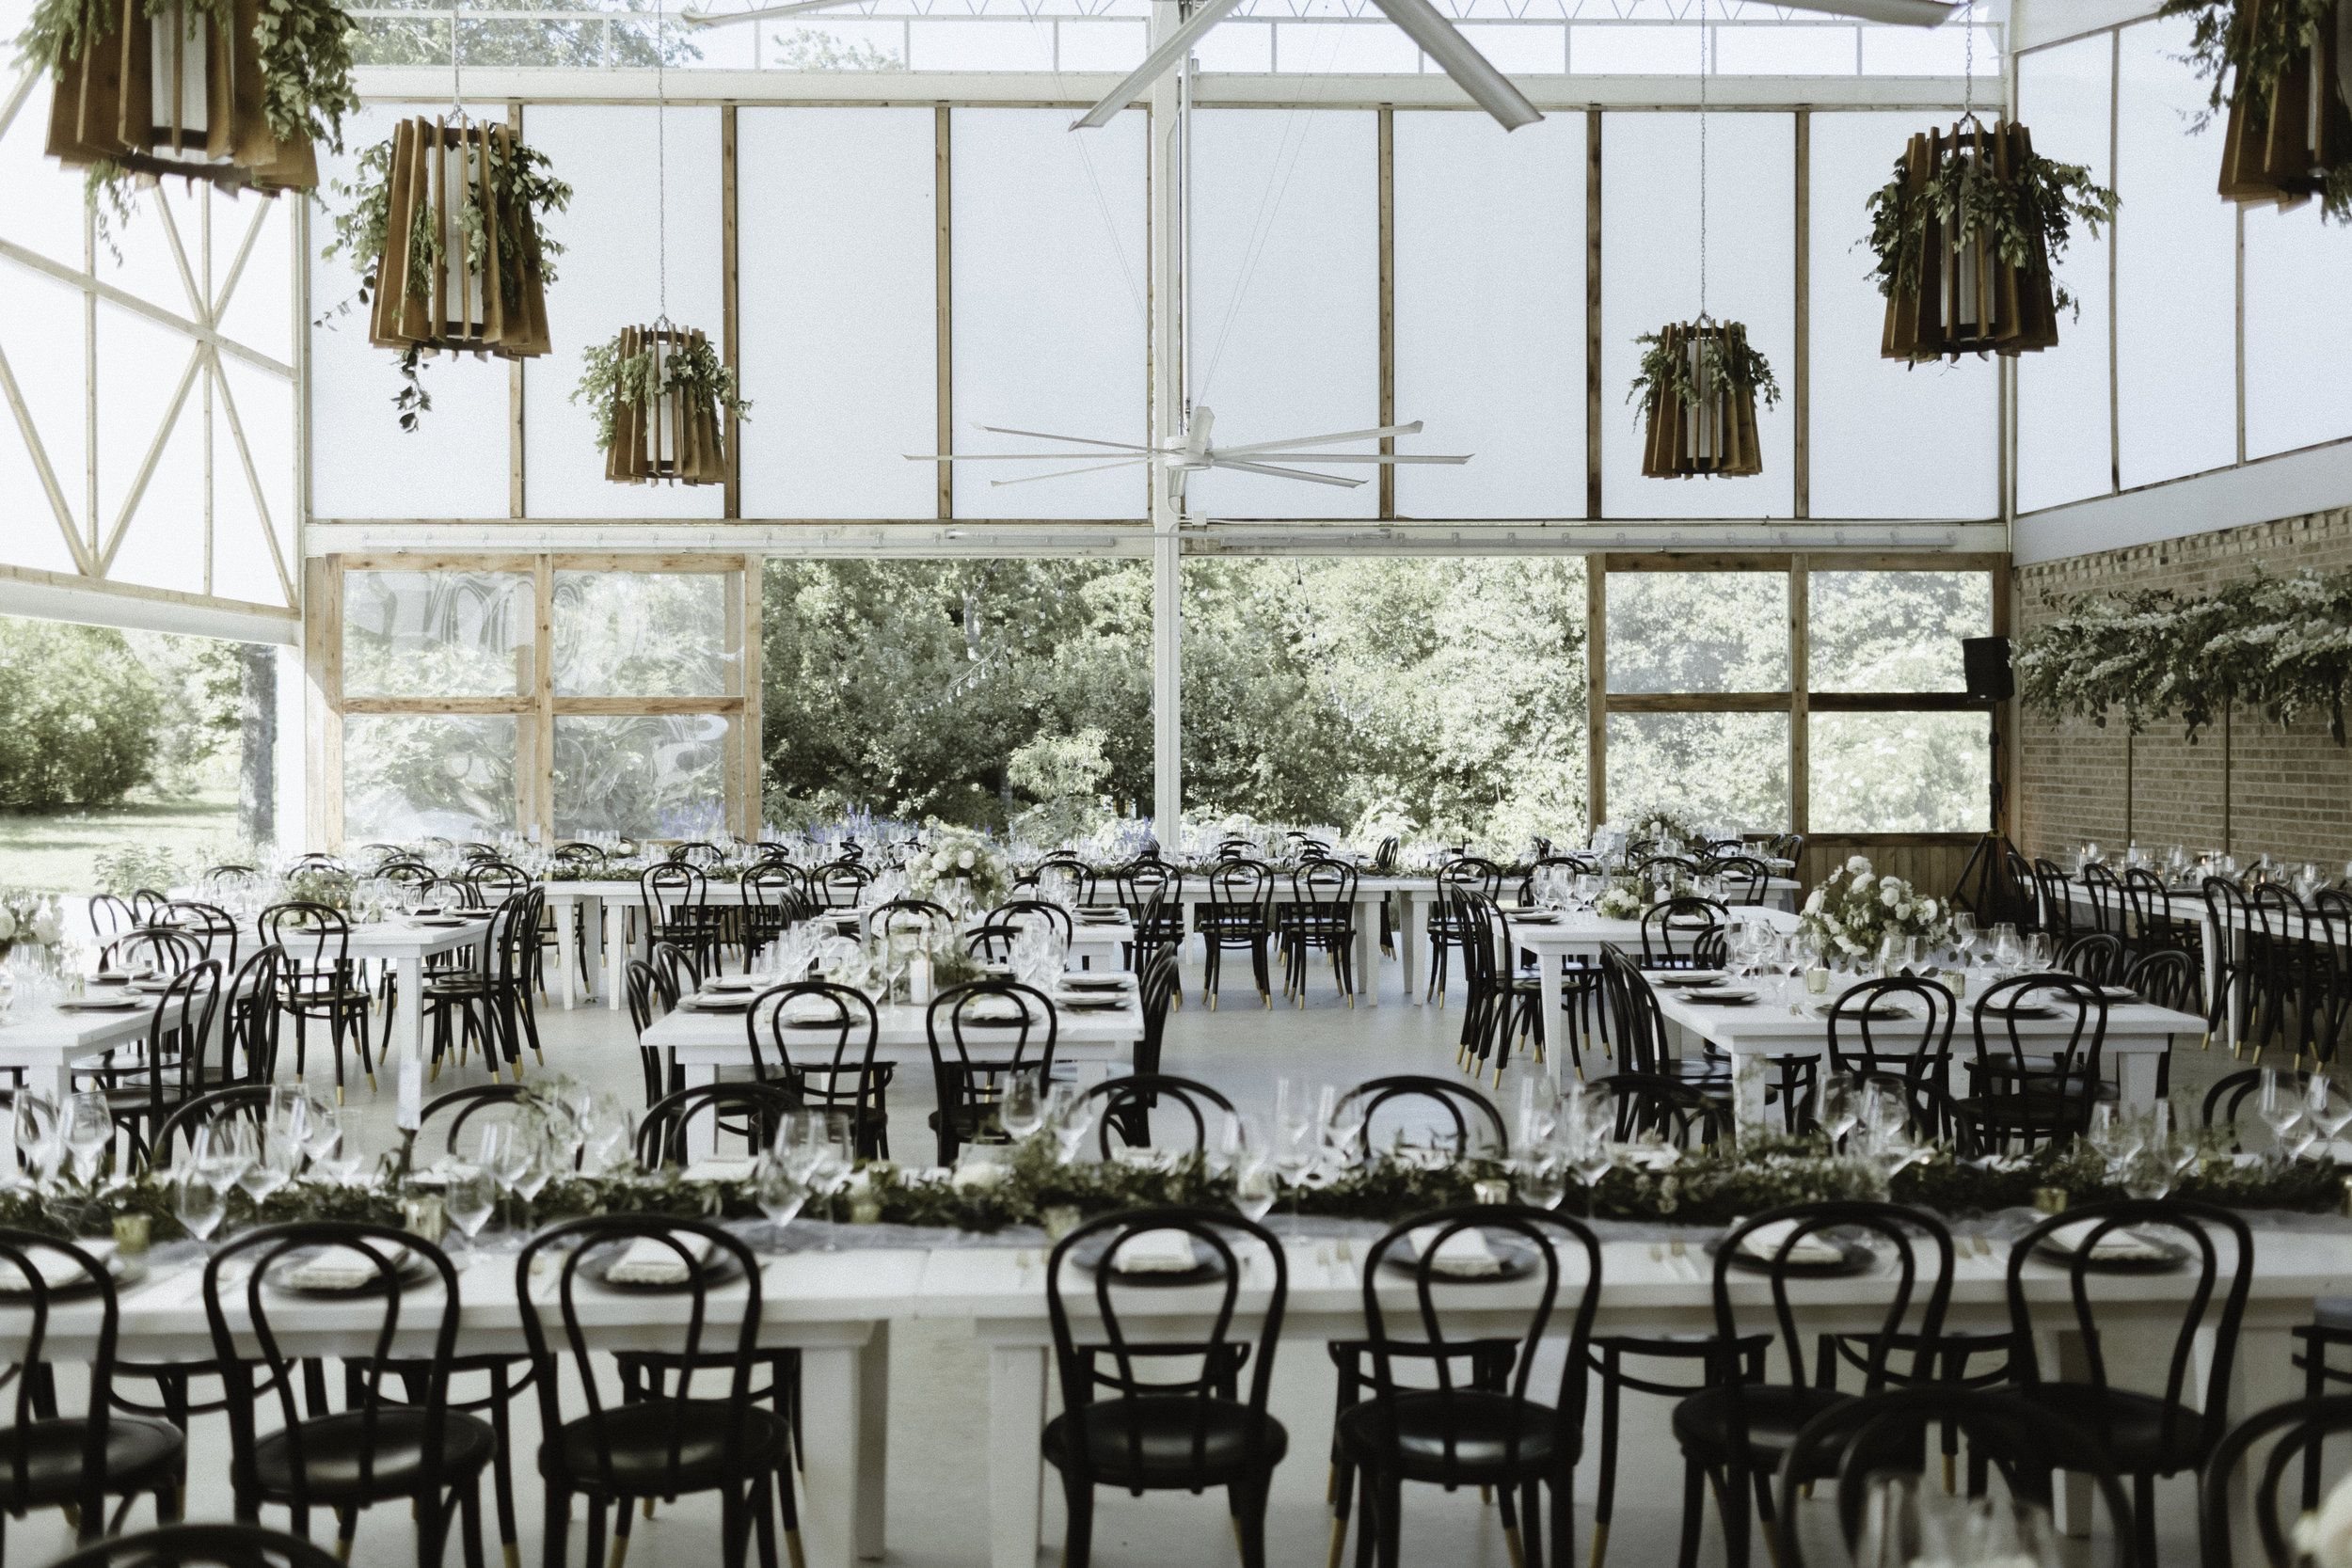 Stems Floral Design Event Styling Wild Sky Events Sarah Falugo Weddings Barr Mansion Birch And Brass Rentals Jolie And Comp Wedding Reception Decorations Wedding Chairs Event Styling